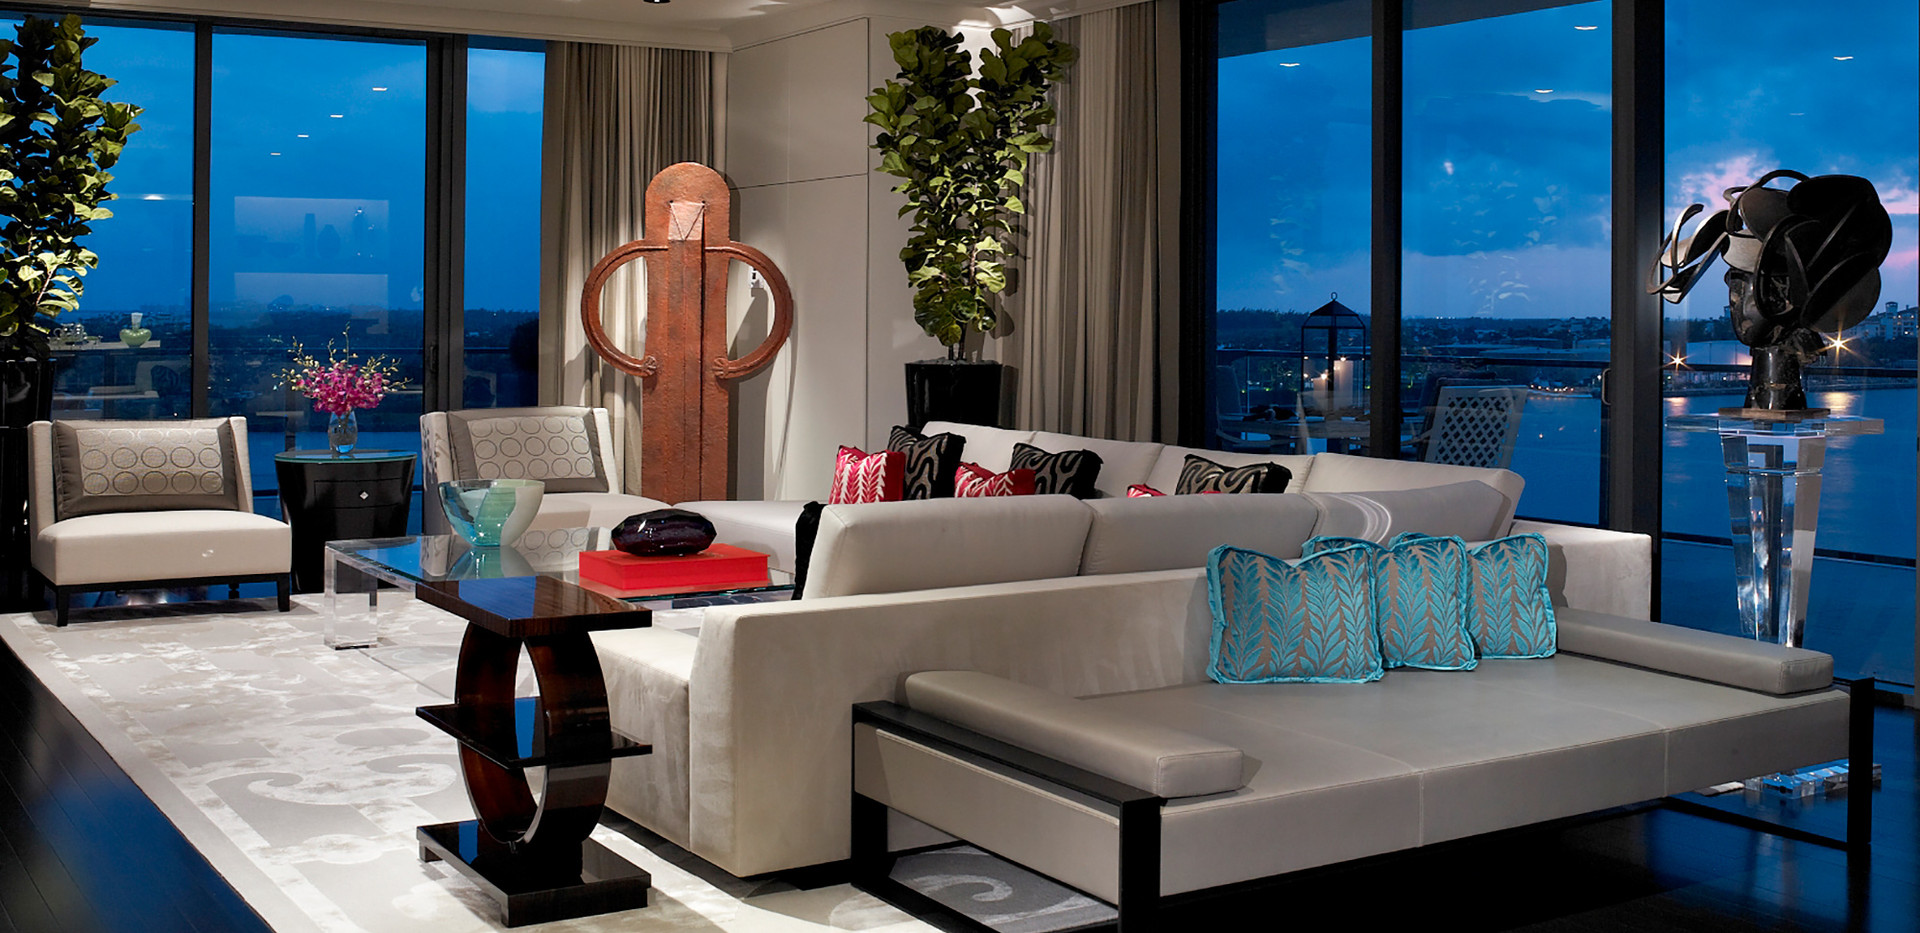 South Beach Condominium